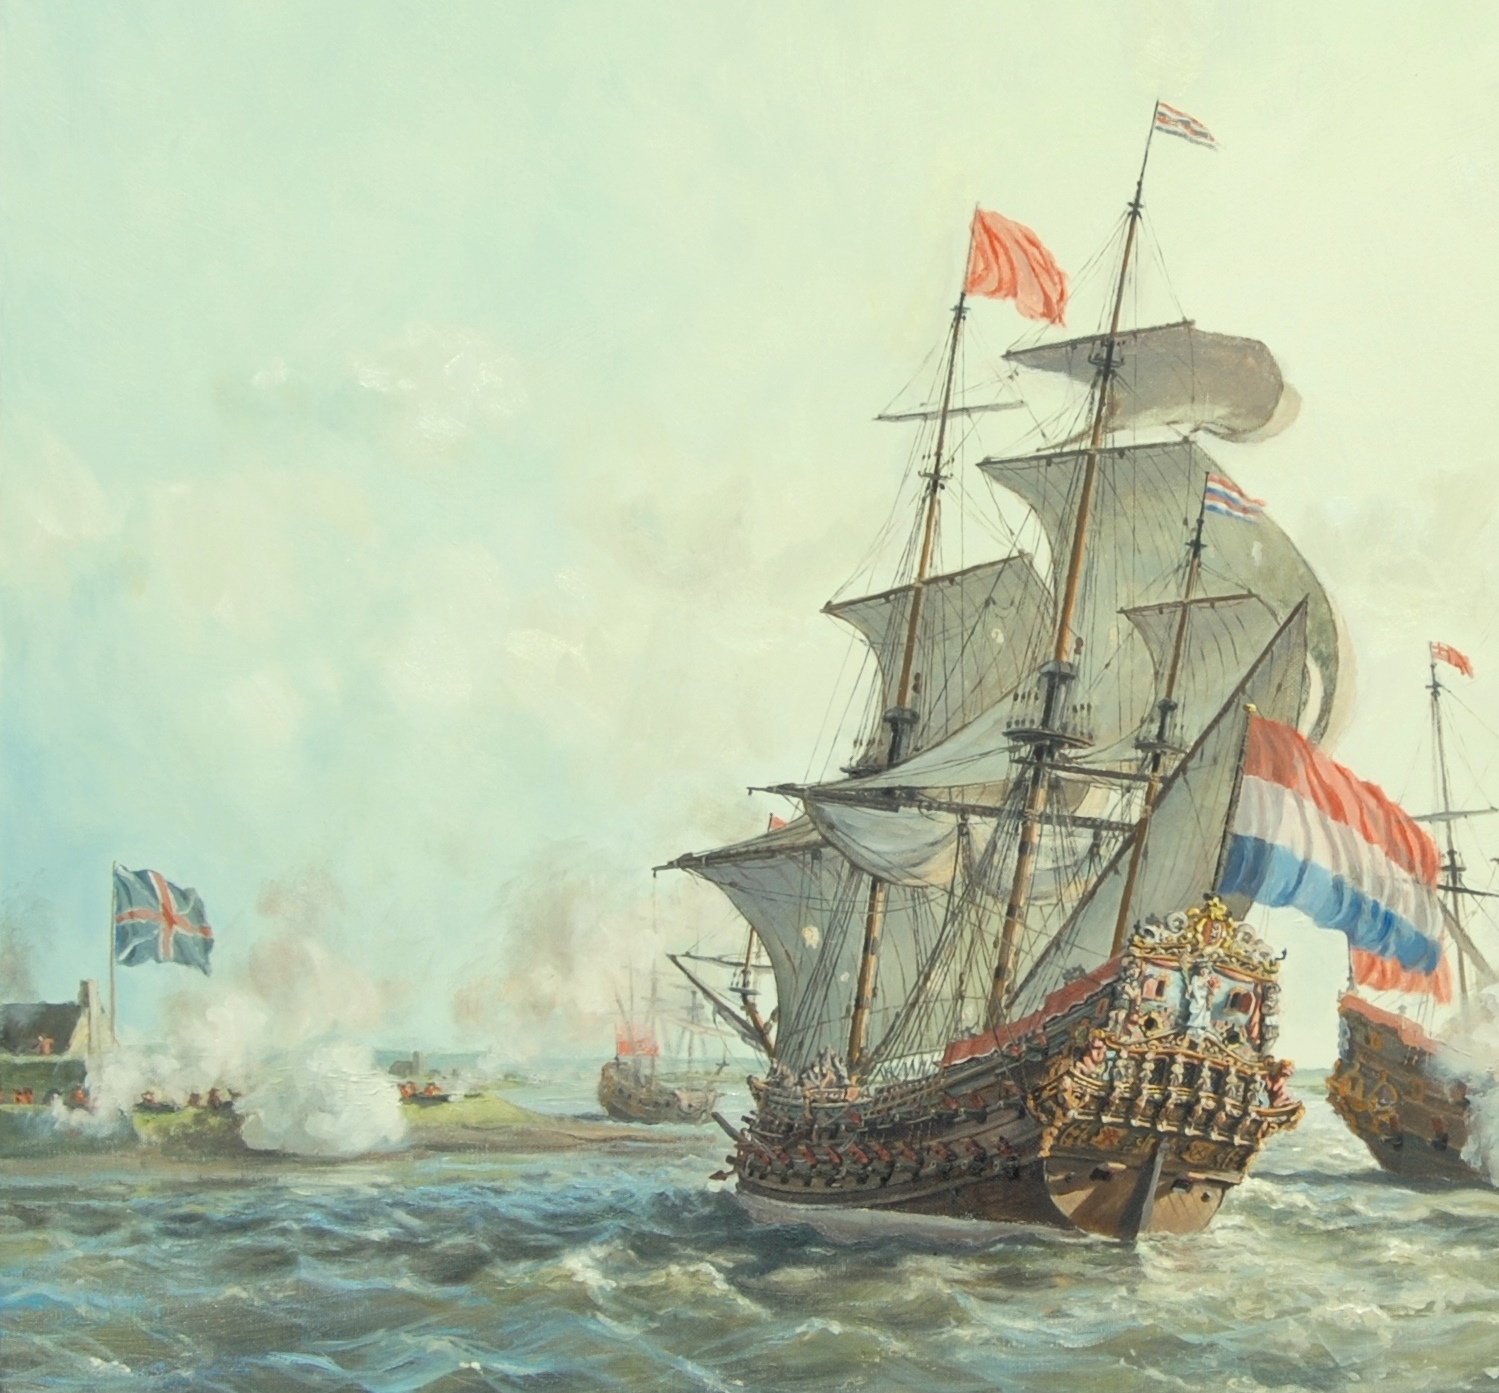 Dutch attacking the English during the Anglo-Dutch Wars